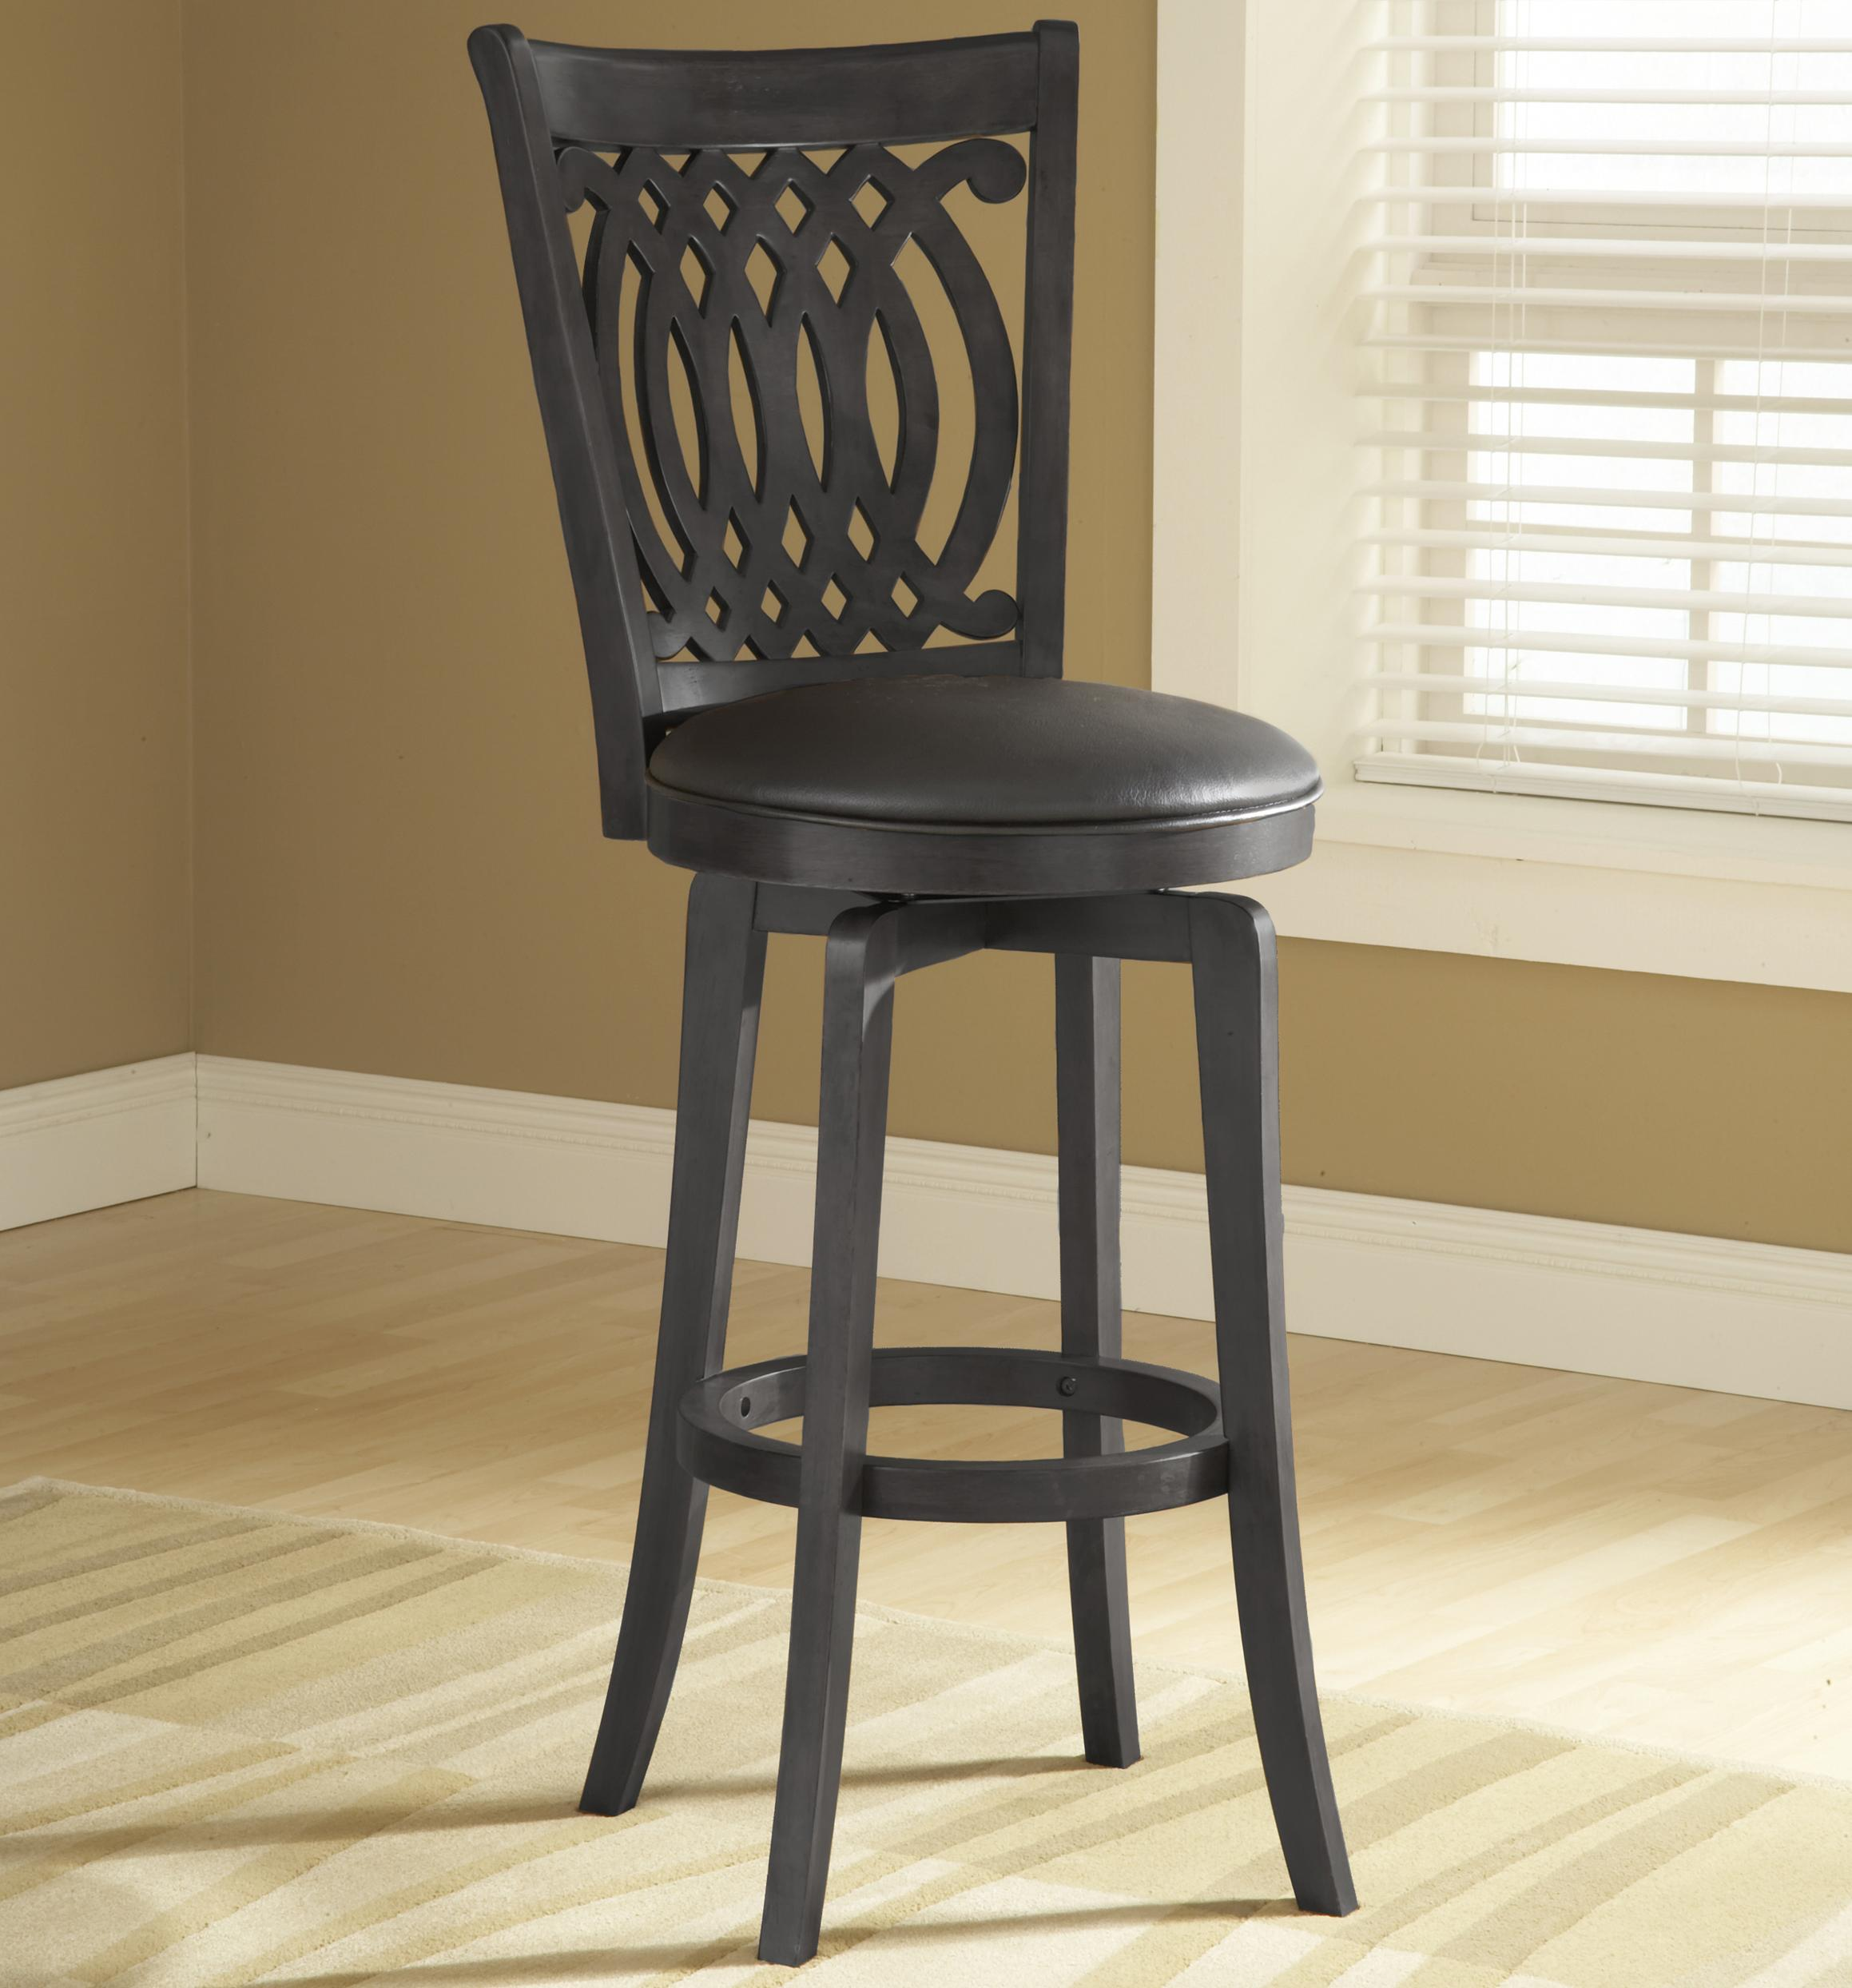 "Wood Stools 24"" Counter Height Van Draus Swivel Stool by Hillsdale at Gill Brothers Furniture"